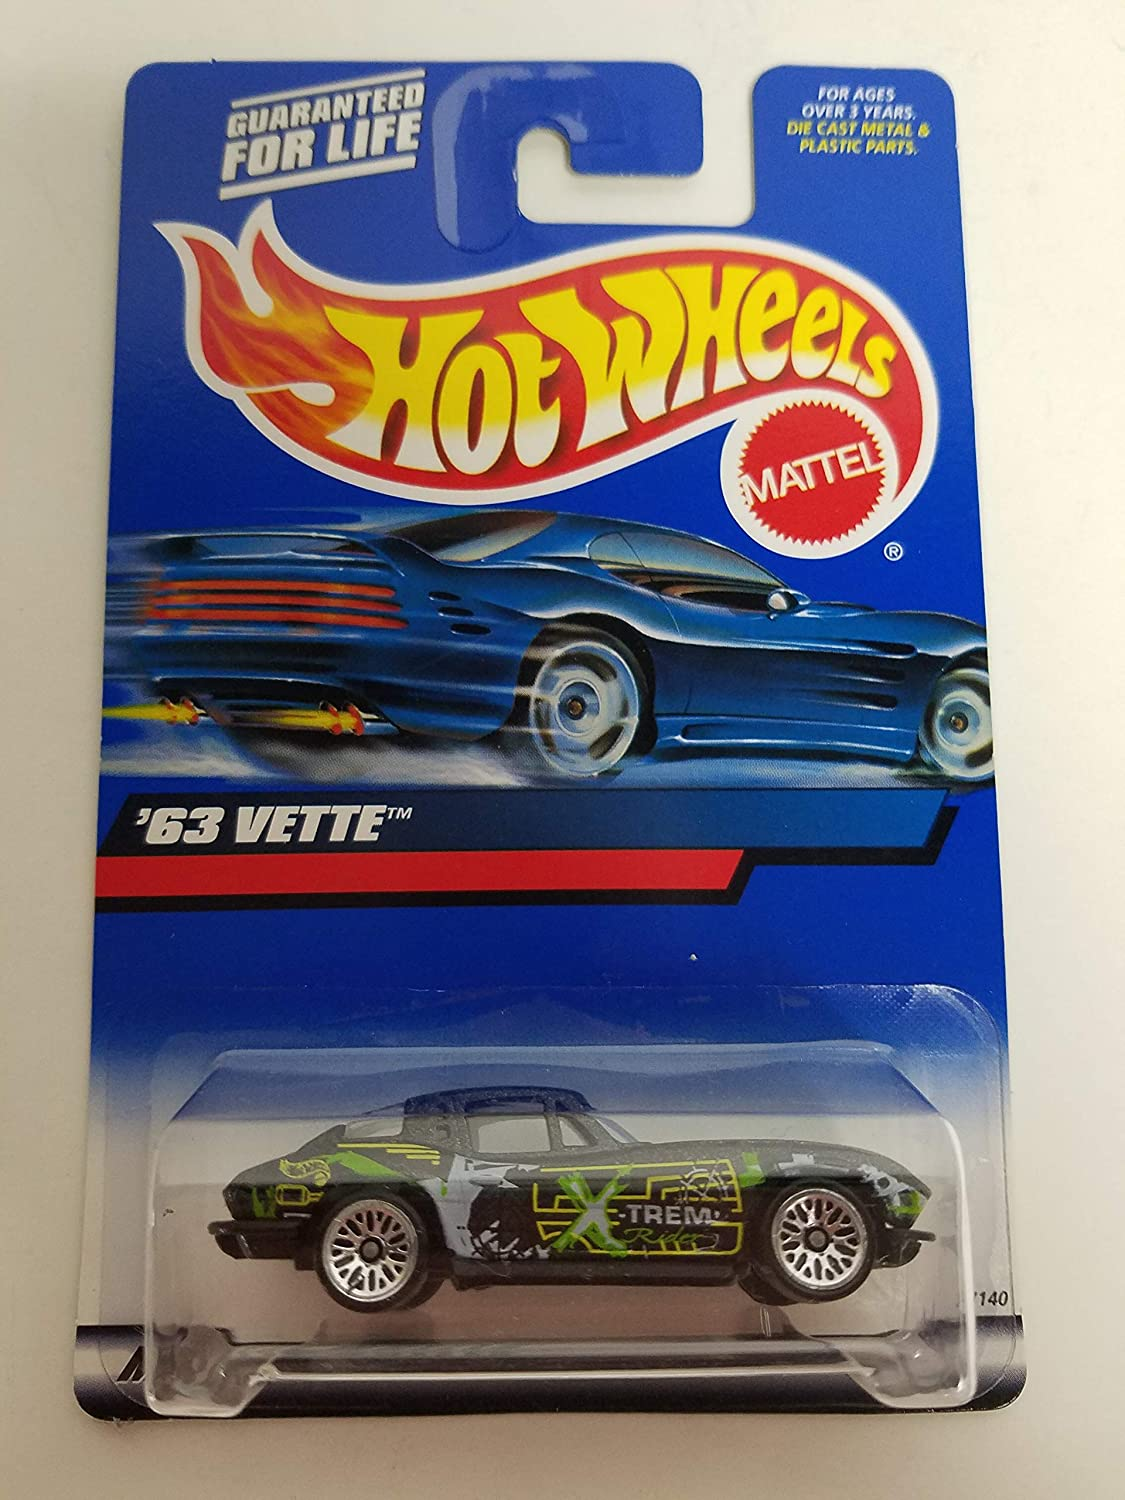 63 Vette Corvette Stingray 2000 Hot Wheels 1//64 scale diecast car No 174